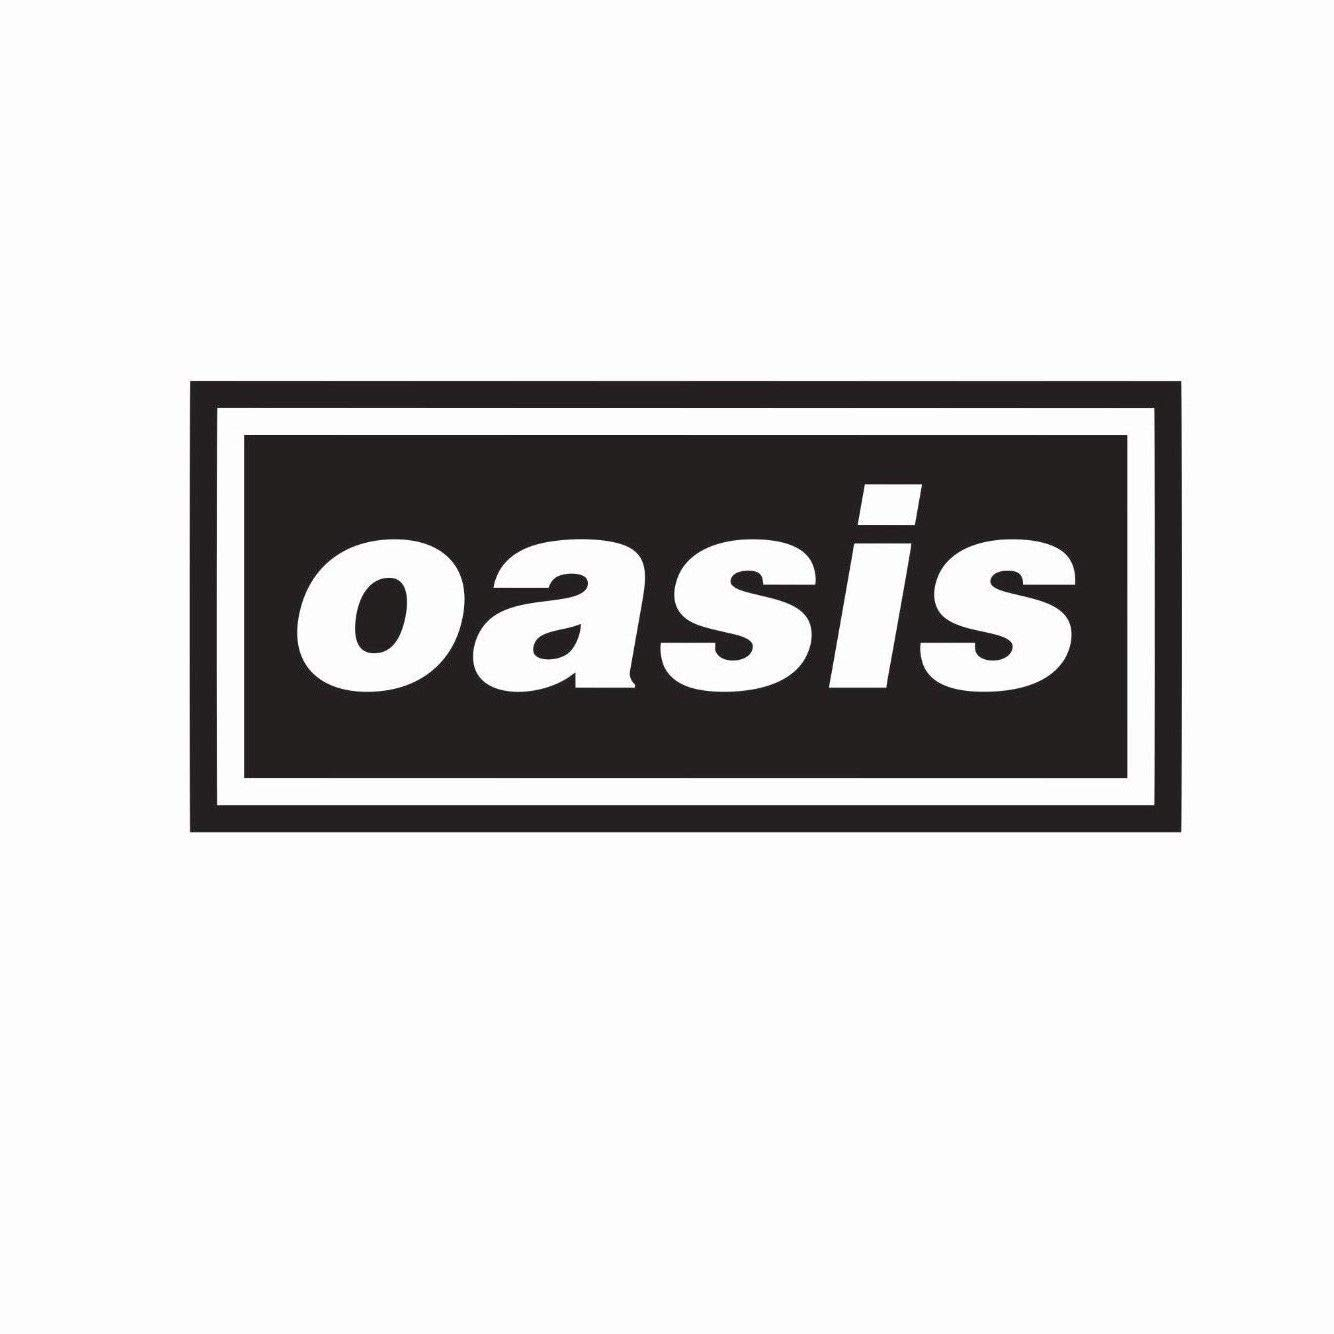 Oasis Bands Automotive Decal//Bumper Sticker